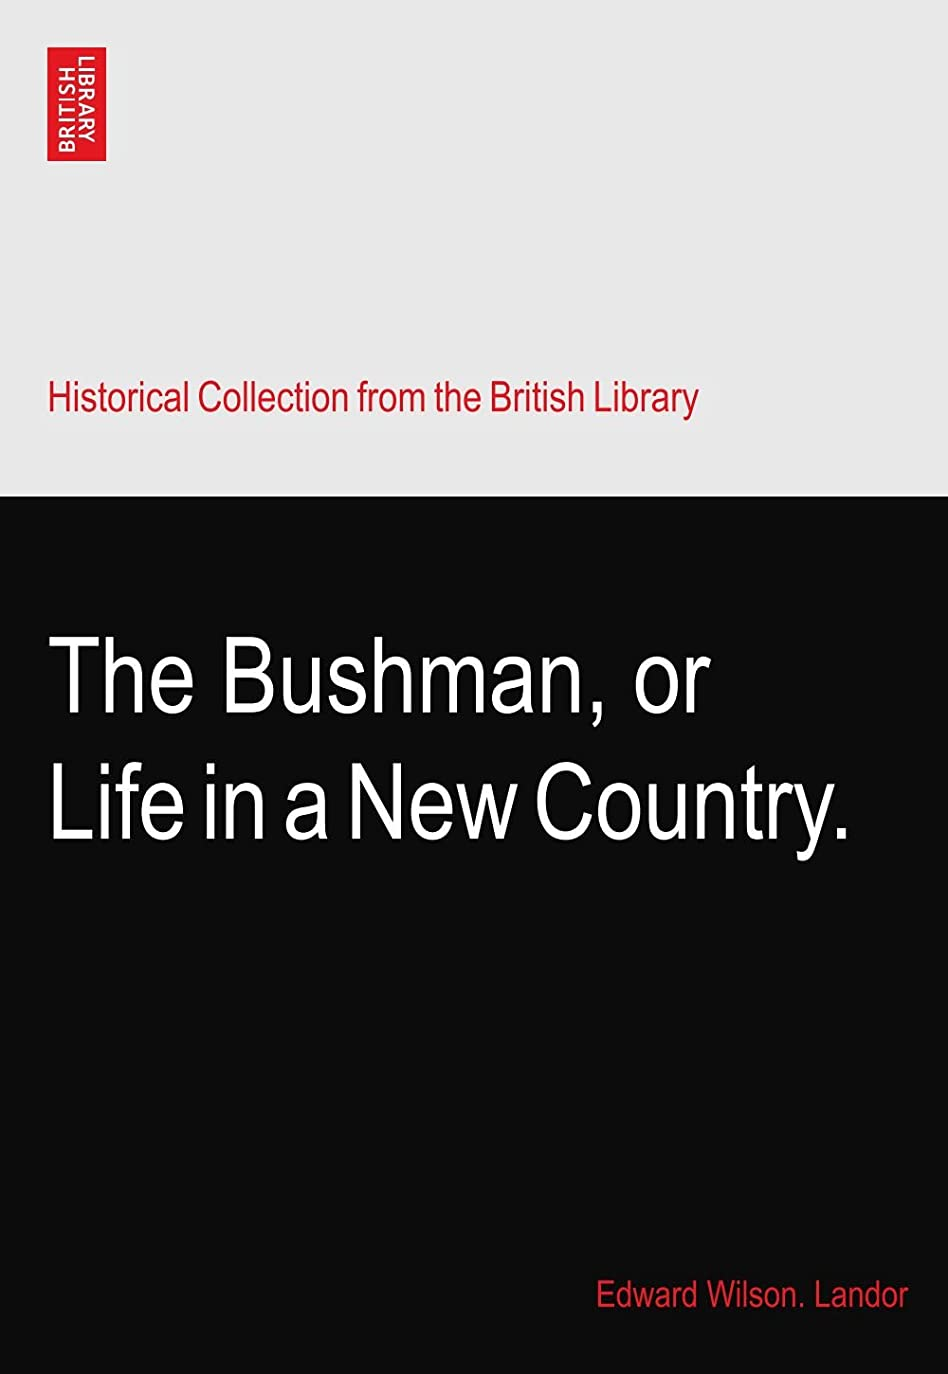 幸運なことに海峡ひも豚The Bushman, or Life in a New Country.